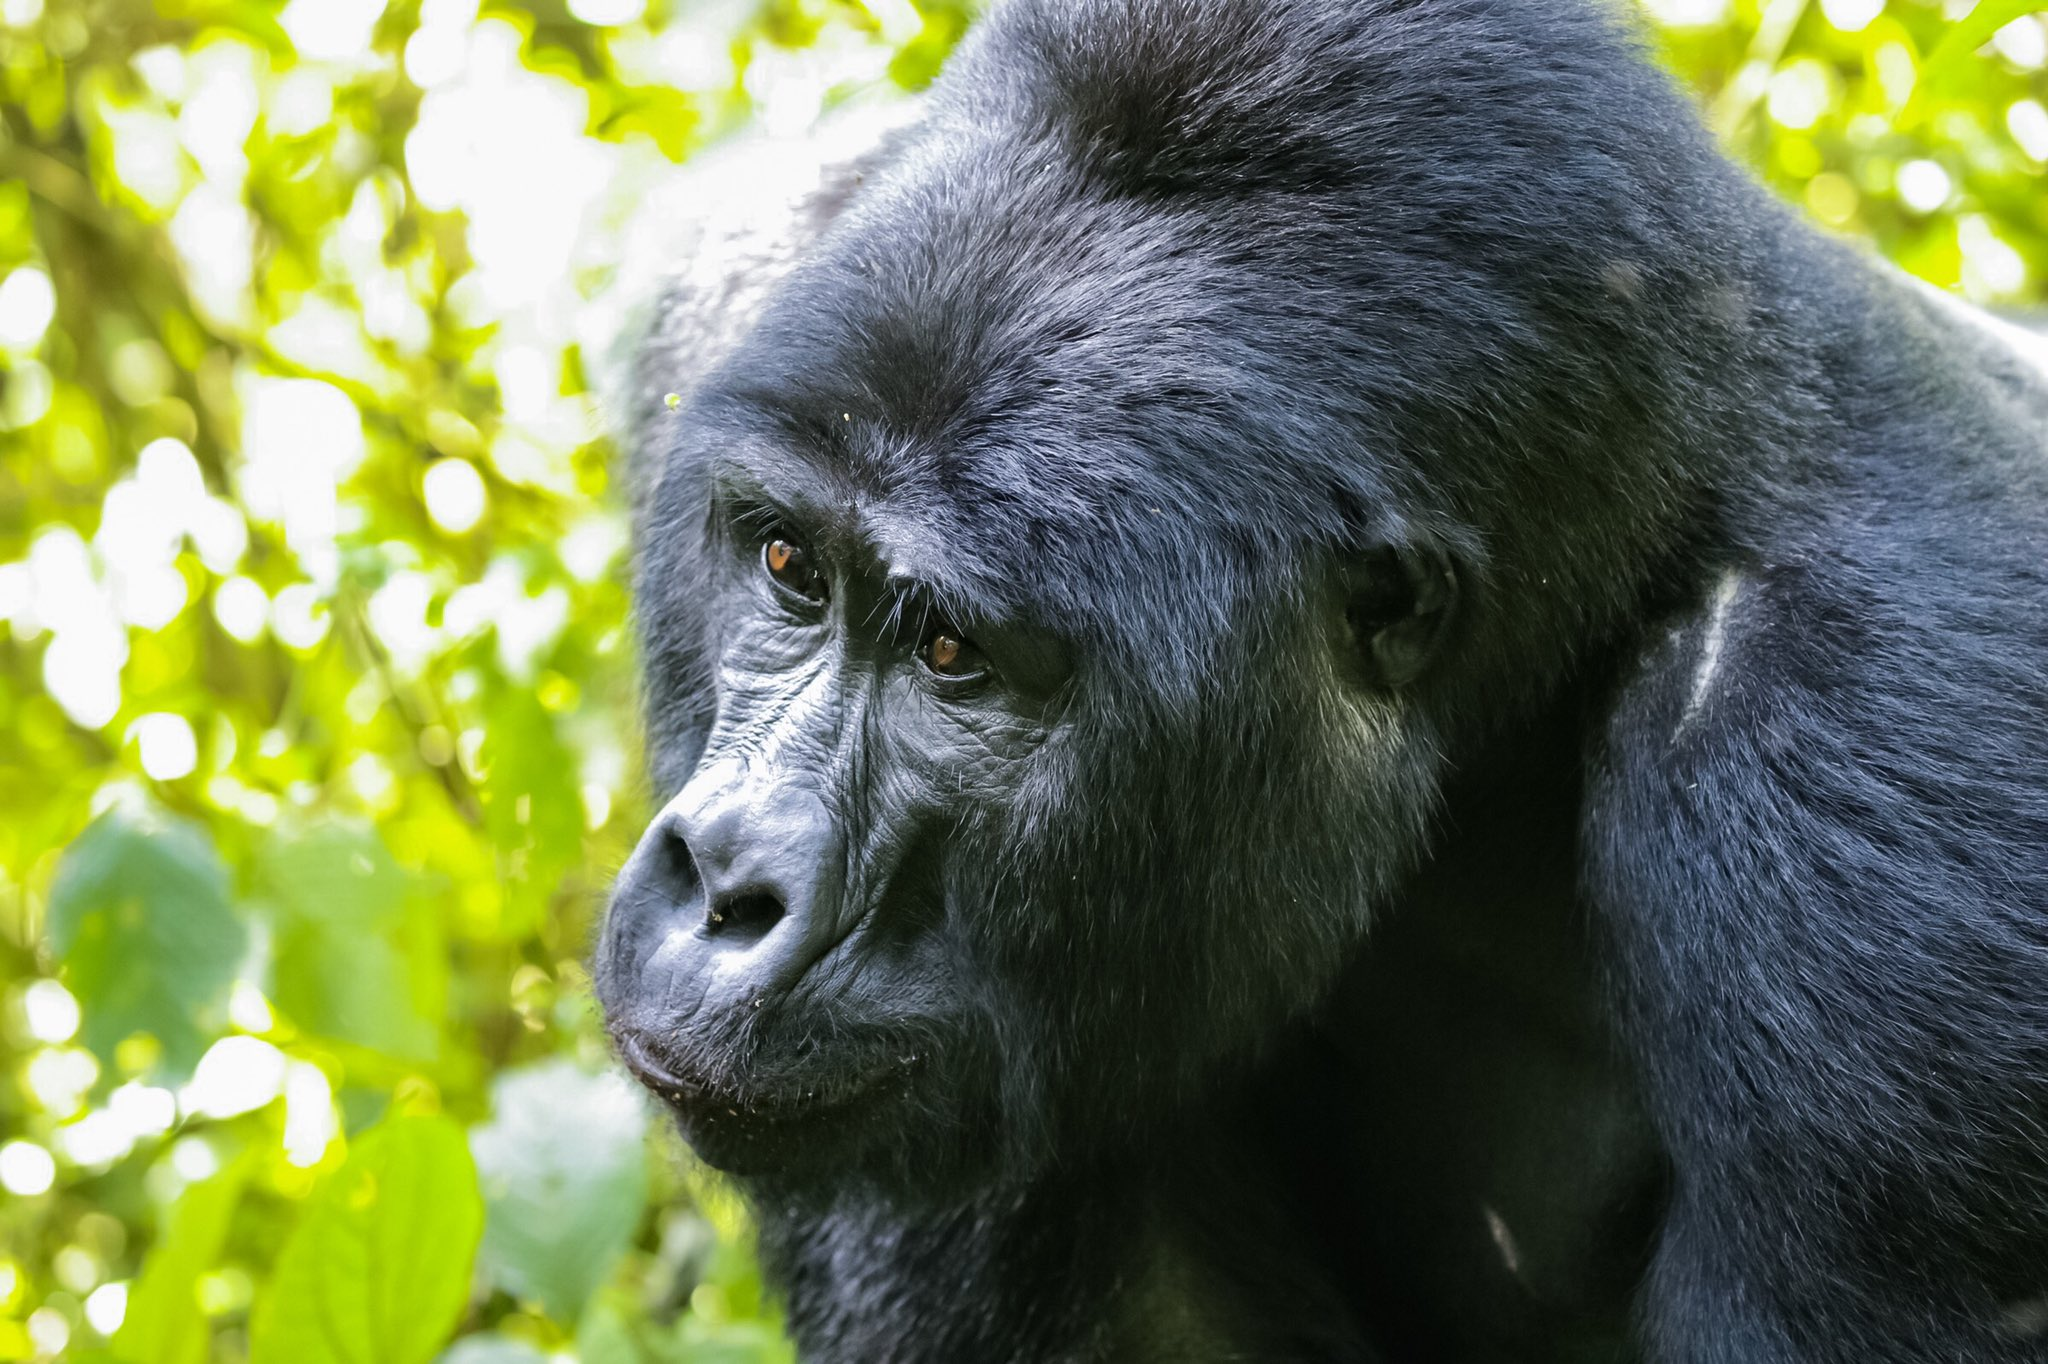 Uganda fly-in safari: Gorilla trekking in Bwindi National Park